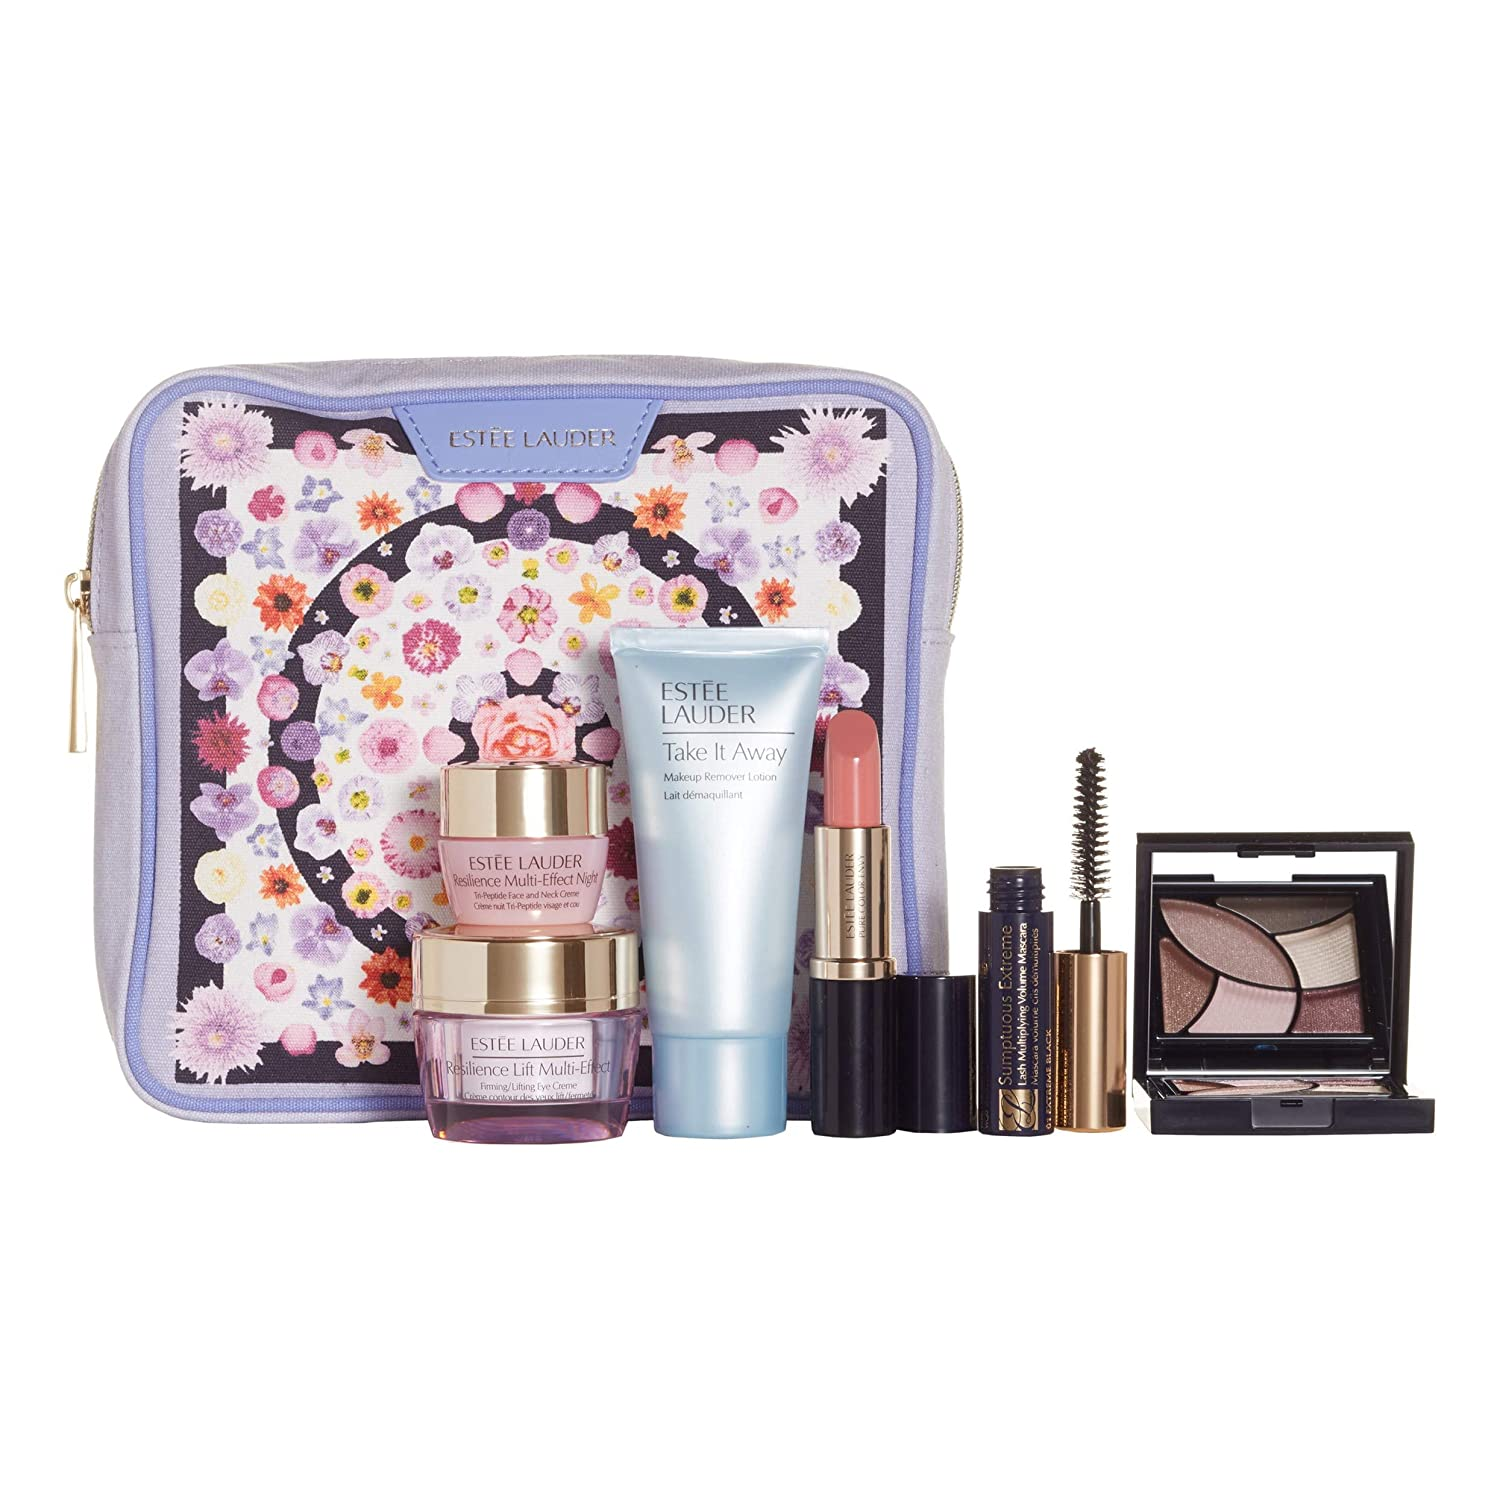 Estee Lauder 2019 7pcs Resilience Multi-Effect Skincare Makeup Gift Set $170+ Value